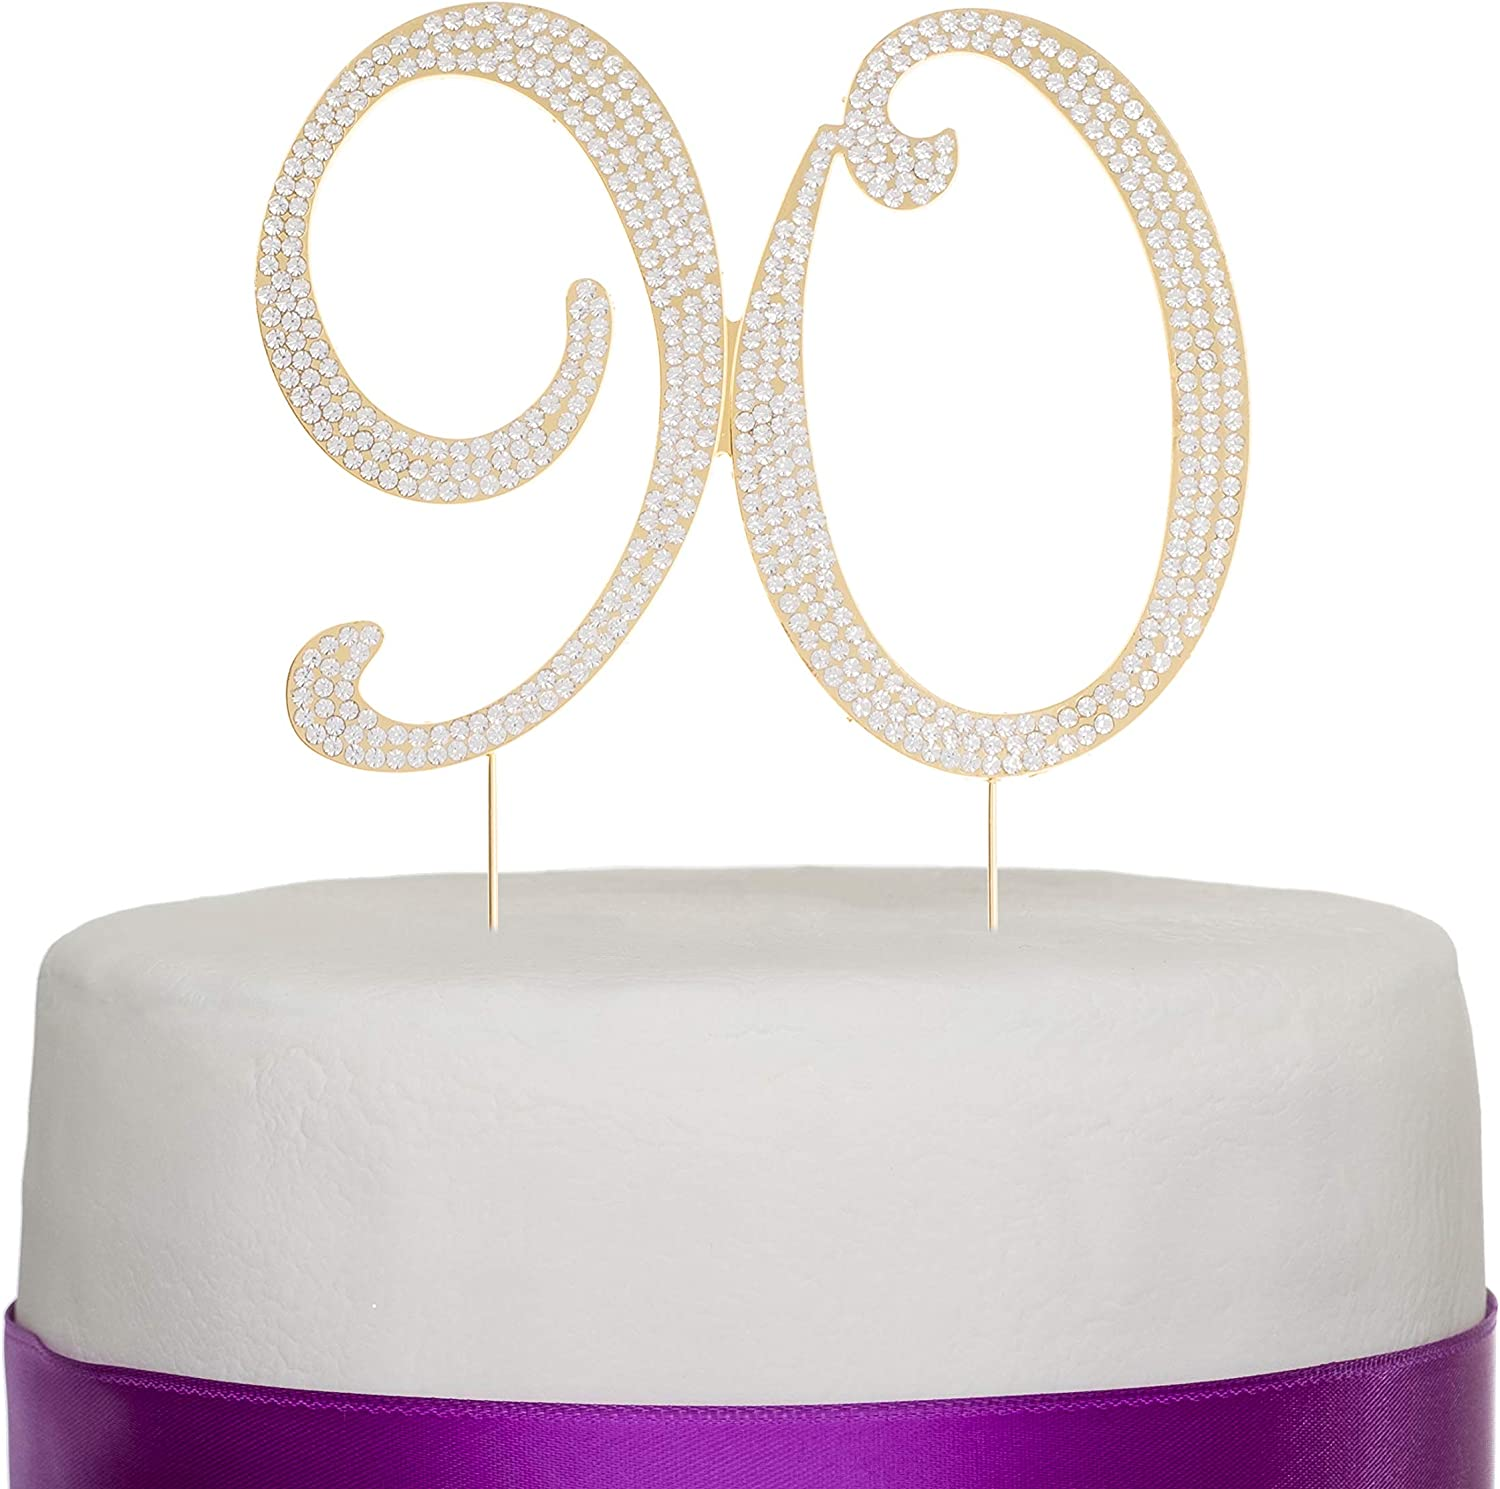 Outstanding 90 Cake Topper For 90Th Birthday Rhinestone Number Party Funny Birthday Cards Online Ioscodamsfinfo